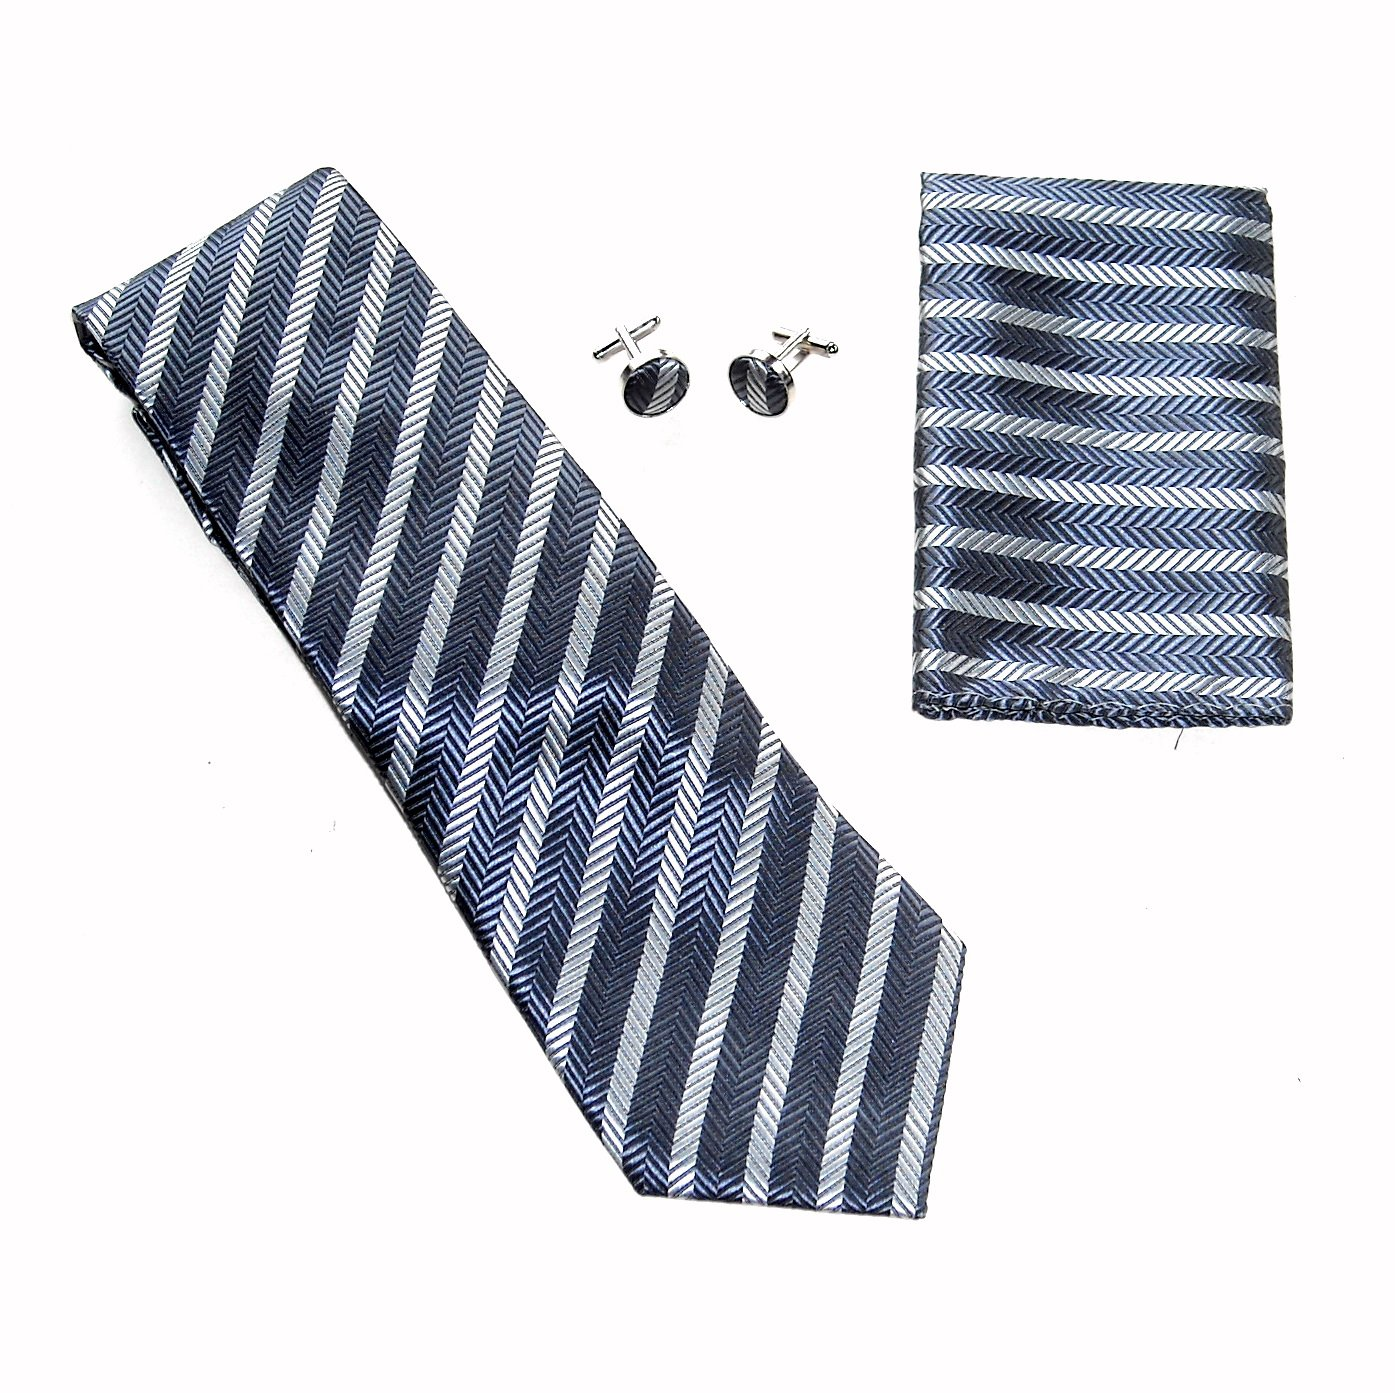 Black Silver Herringbone Stripe Necktie Matching Handkerchief Cufflinks Boxed Gift Set